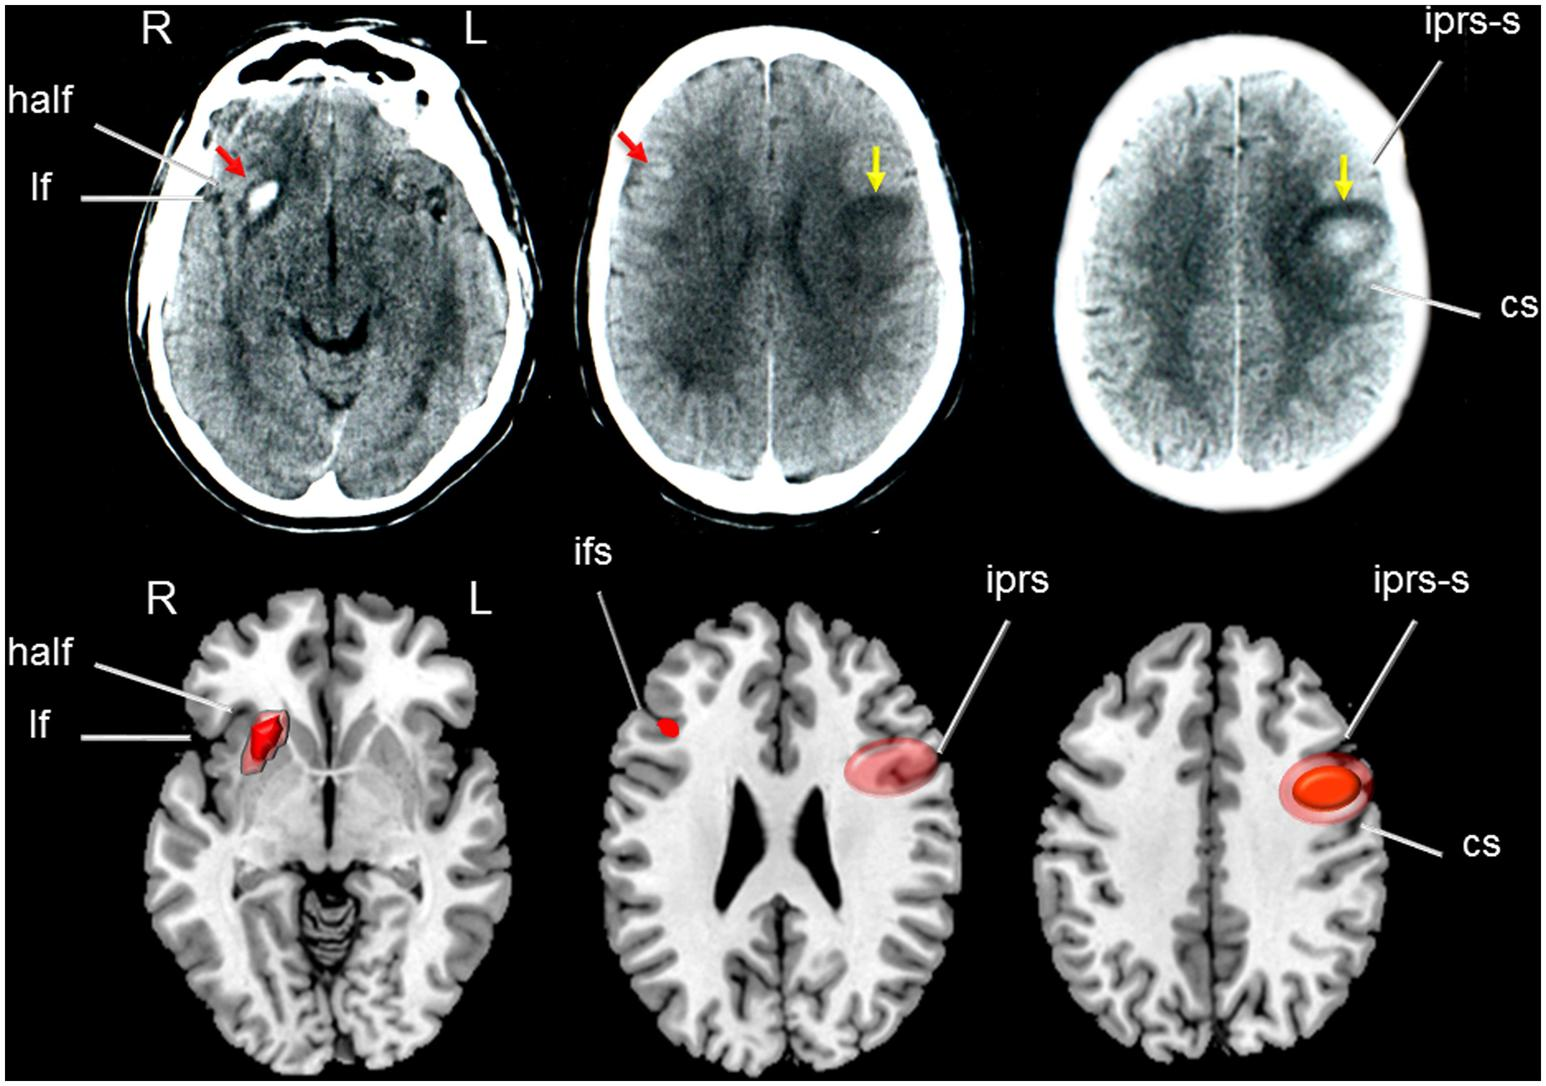 Frontiers   Loss of regional accent after damage to the speech production  network   Human Neuroscience